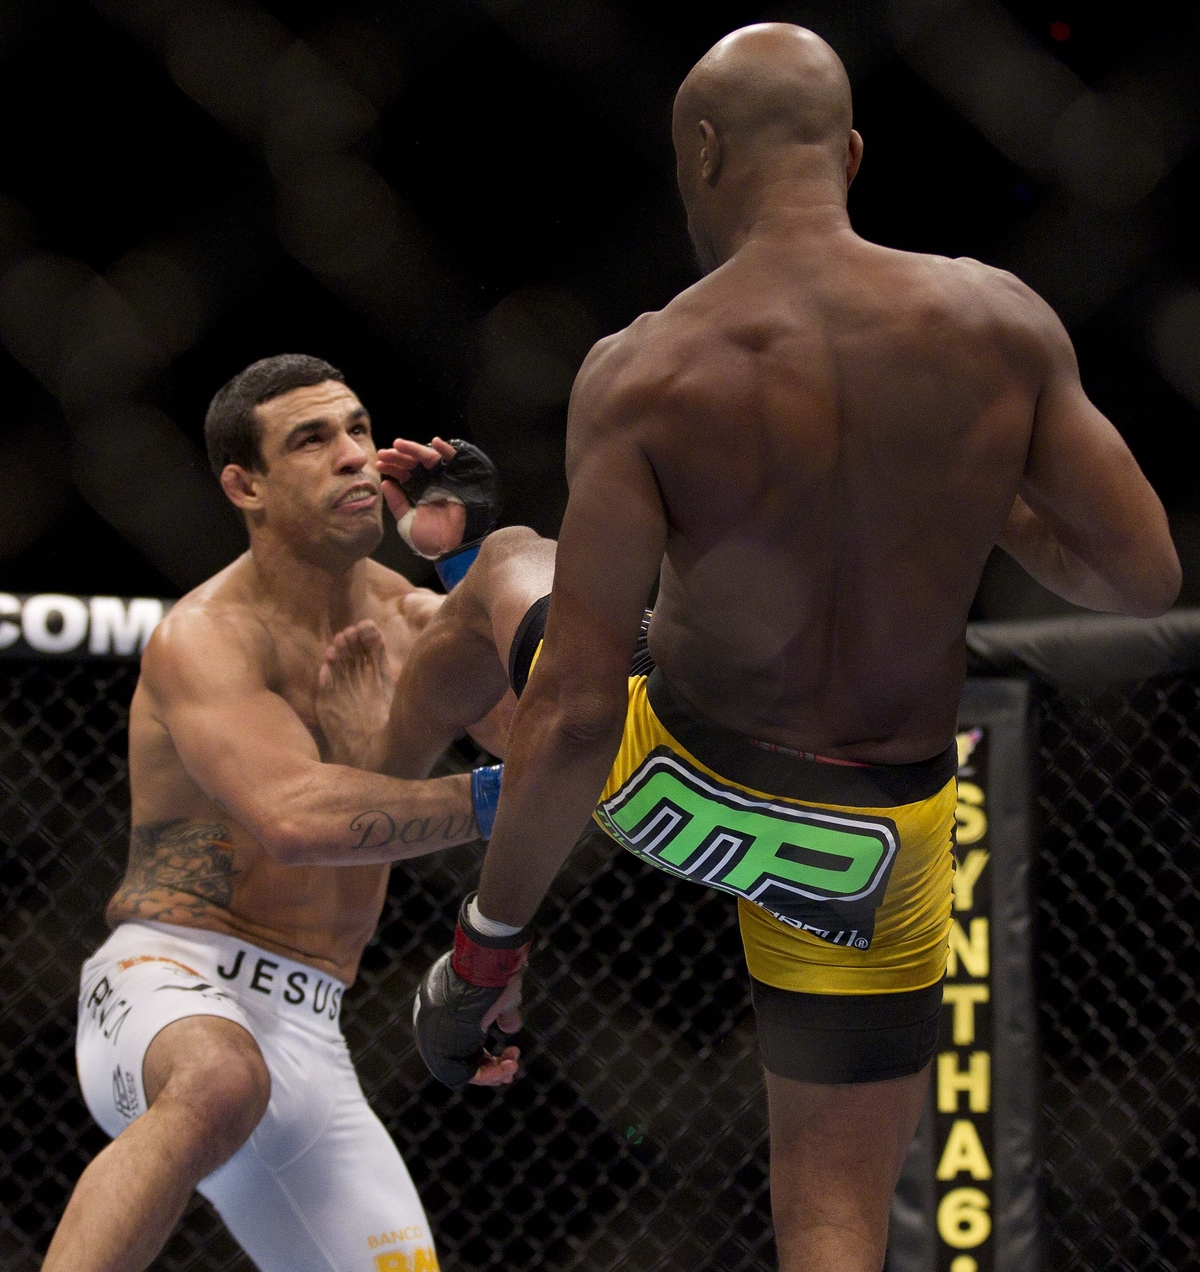 video review : Anderson Silva versus Vitor Belfort at UFC 126